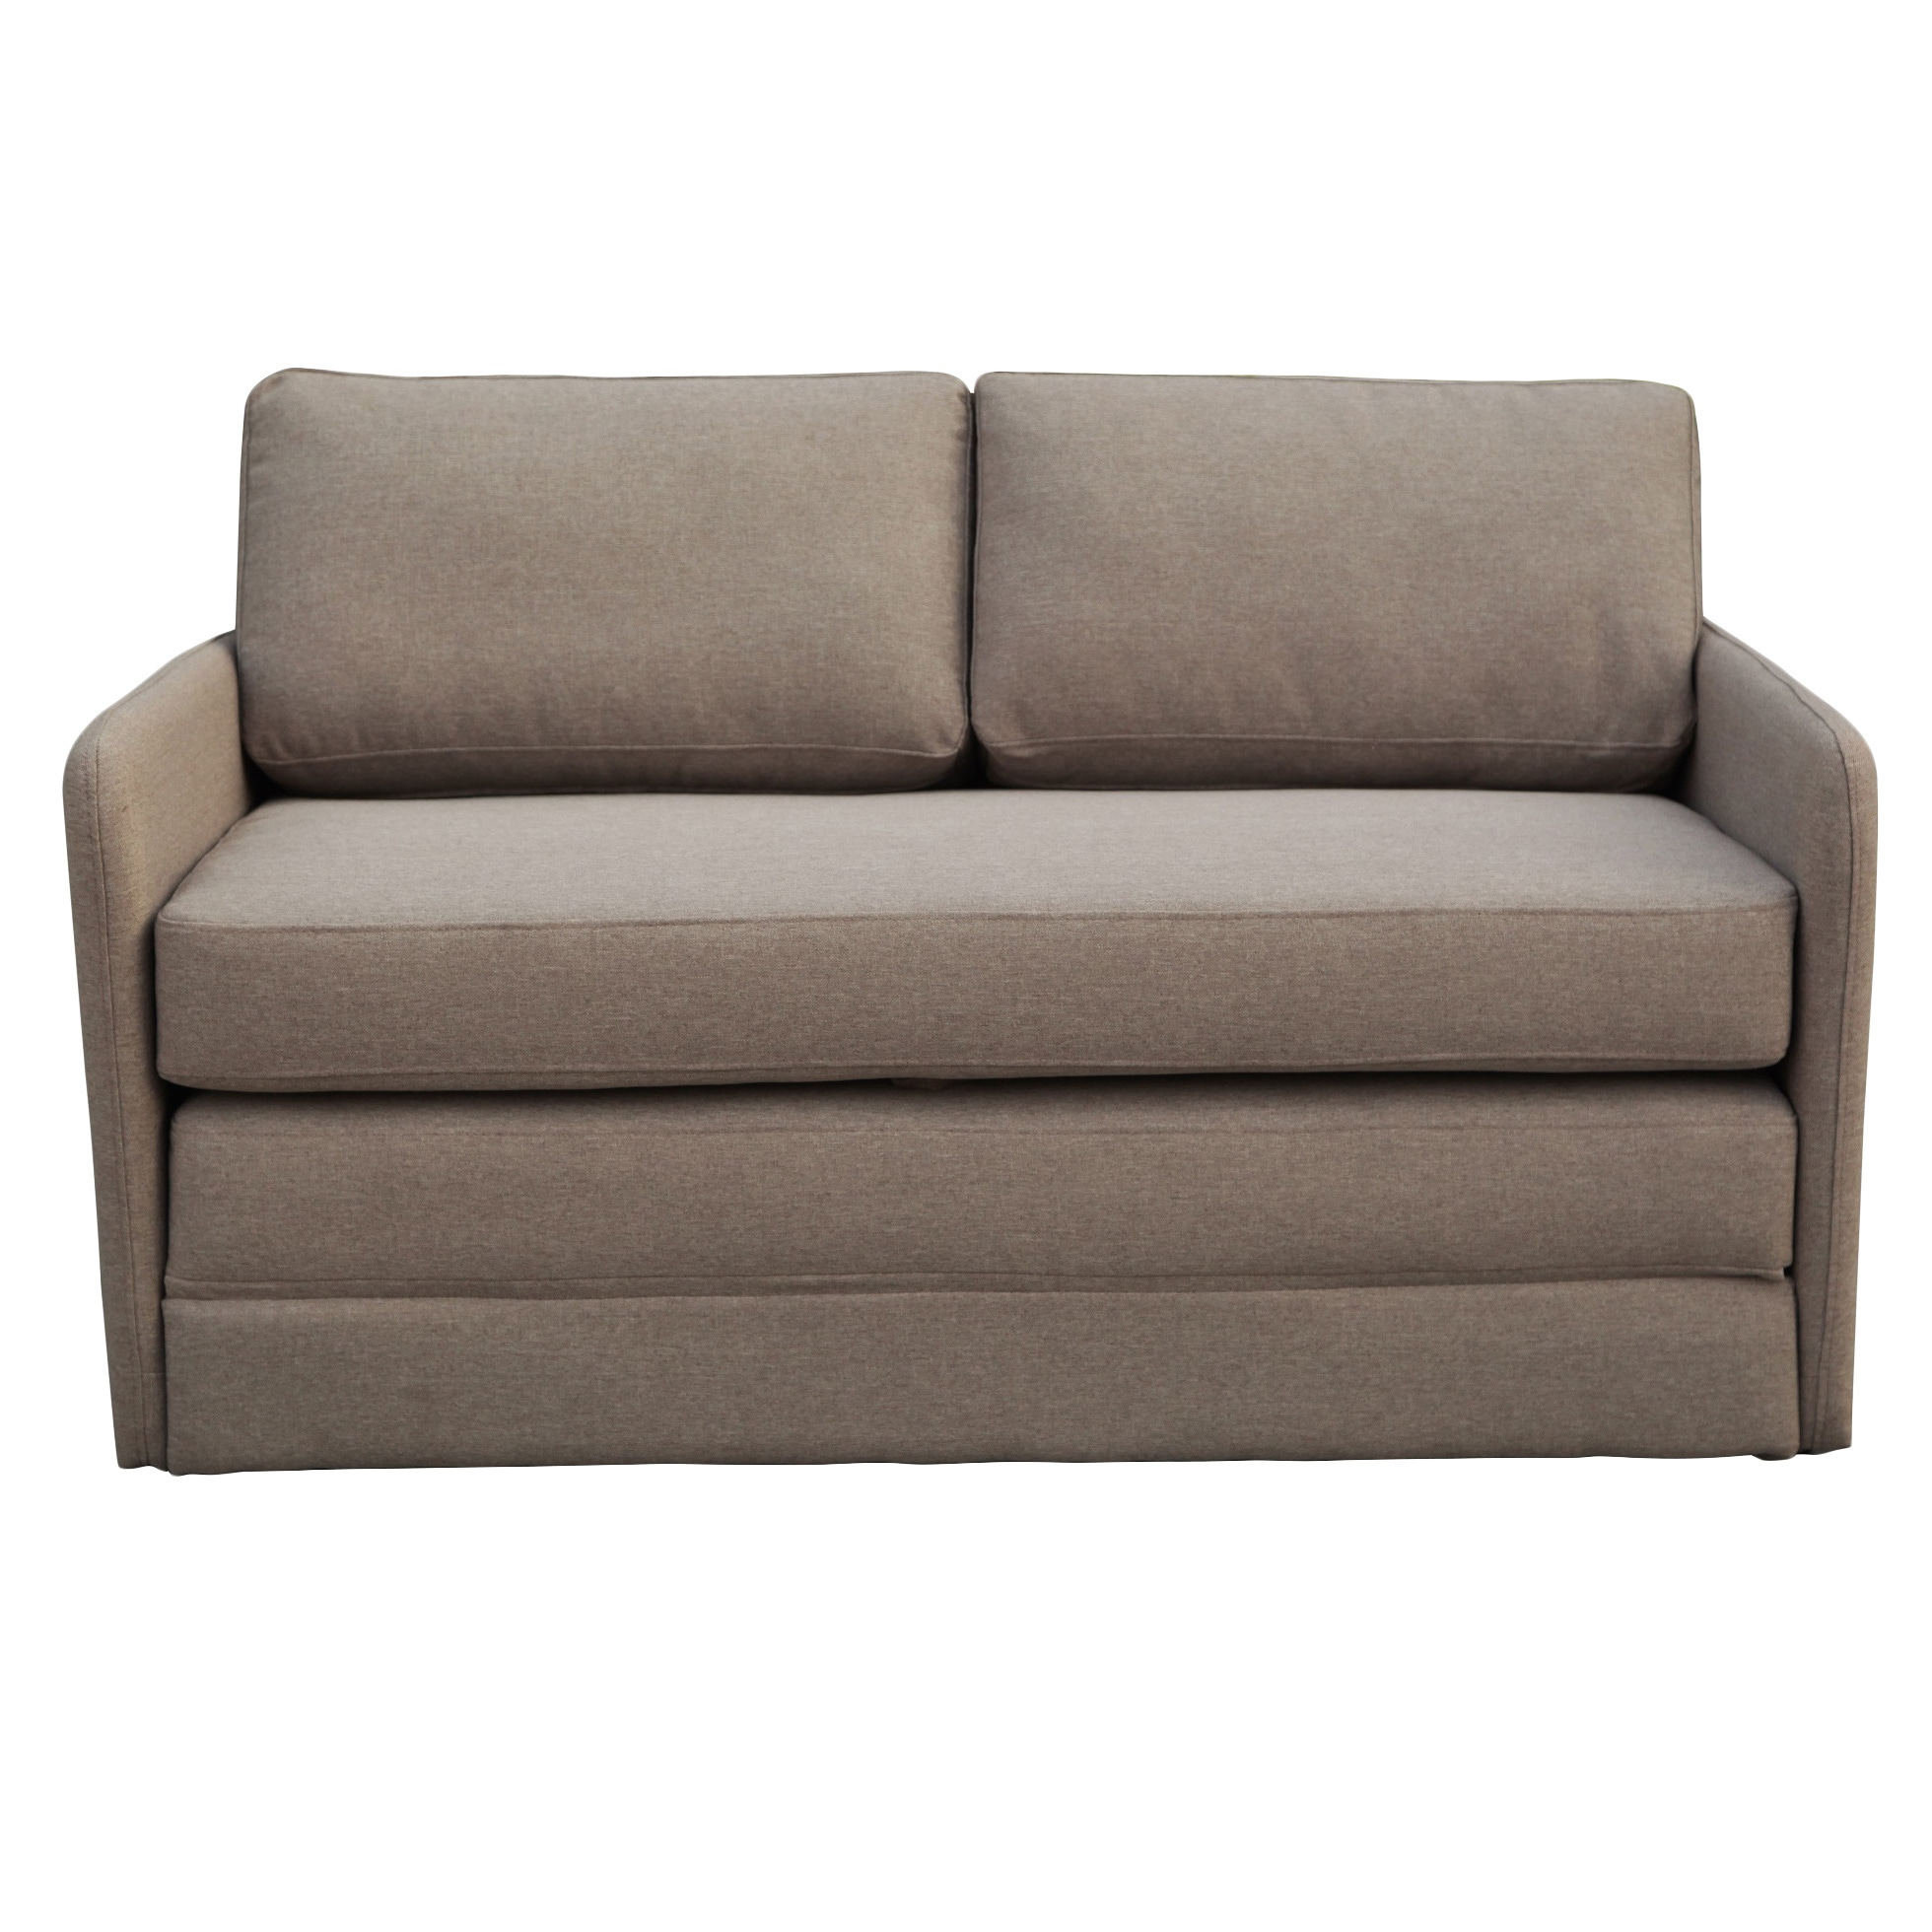 Shop Phillip Taupe Loveseat With Pullout Bed On Sale Overstock 11706636